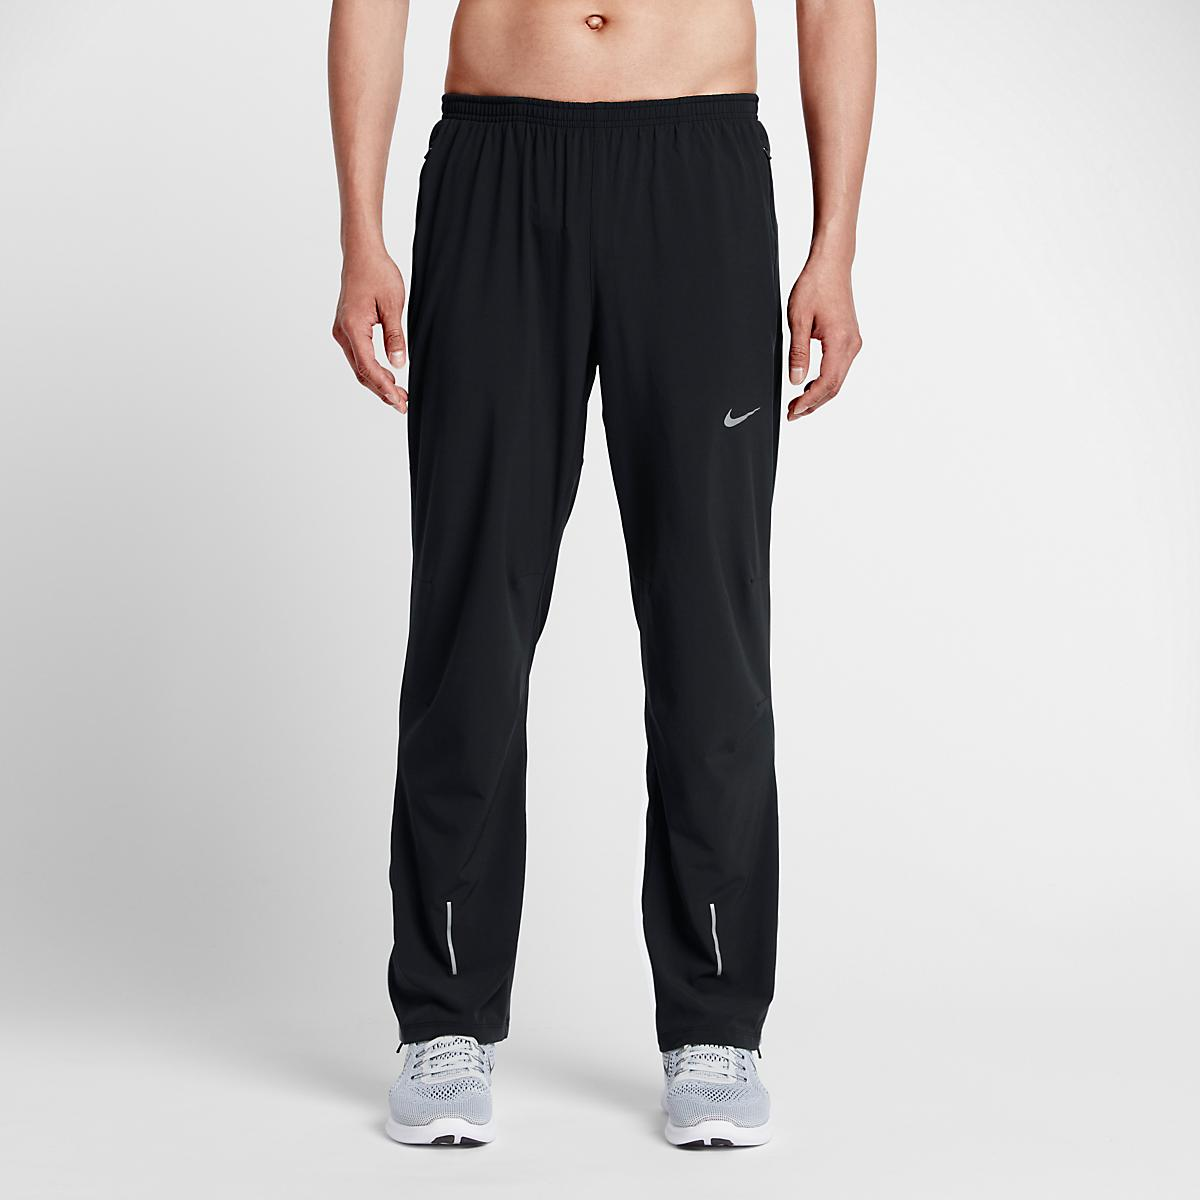 Men's Nike�Dri-FIT Stretch Woven Pant